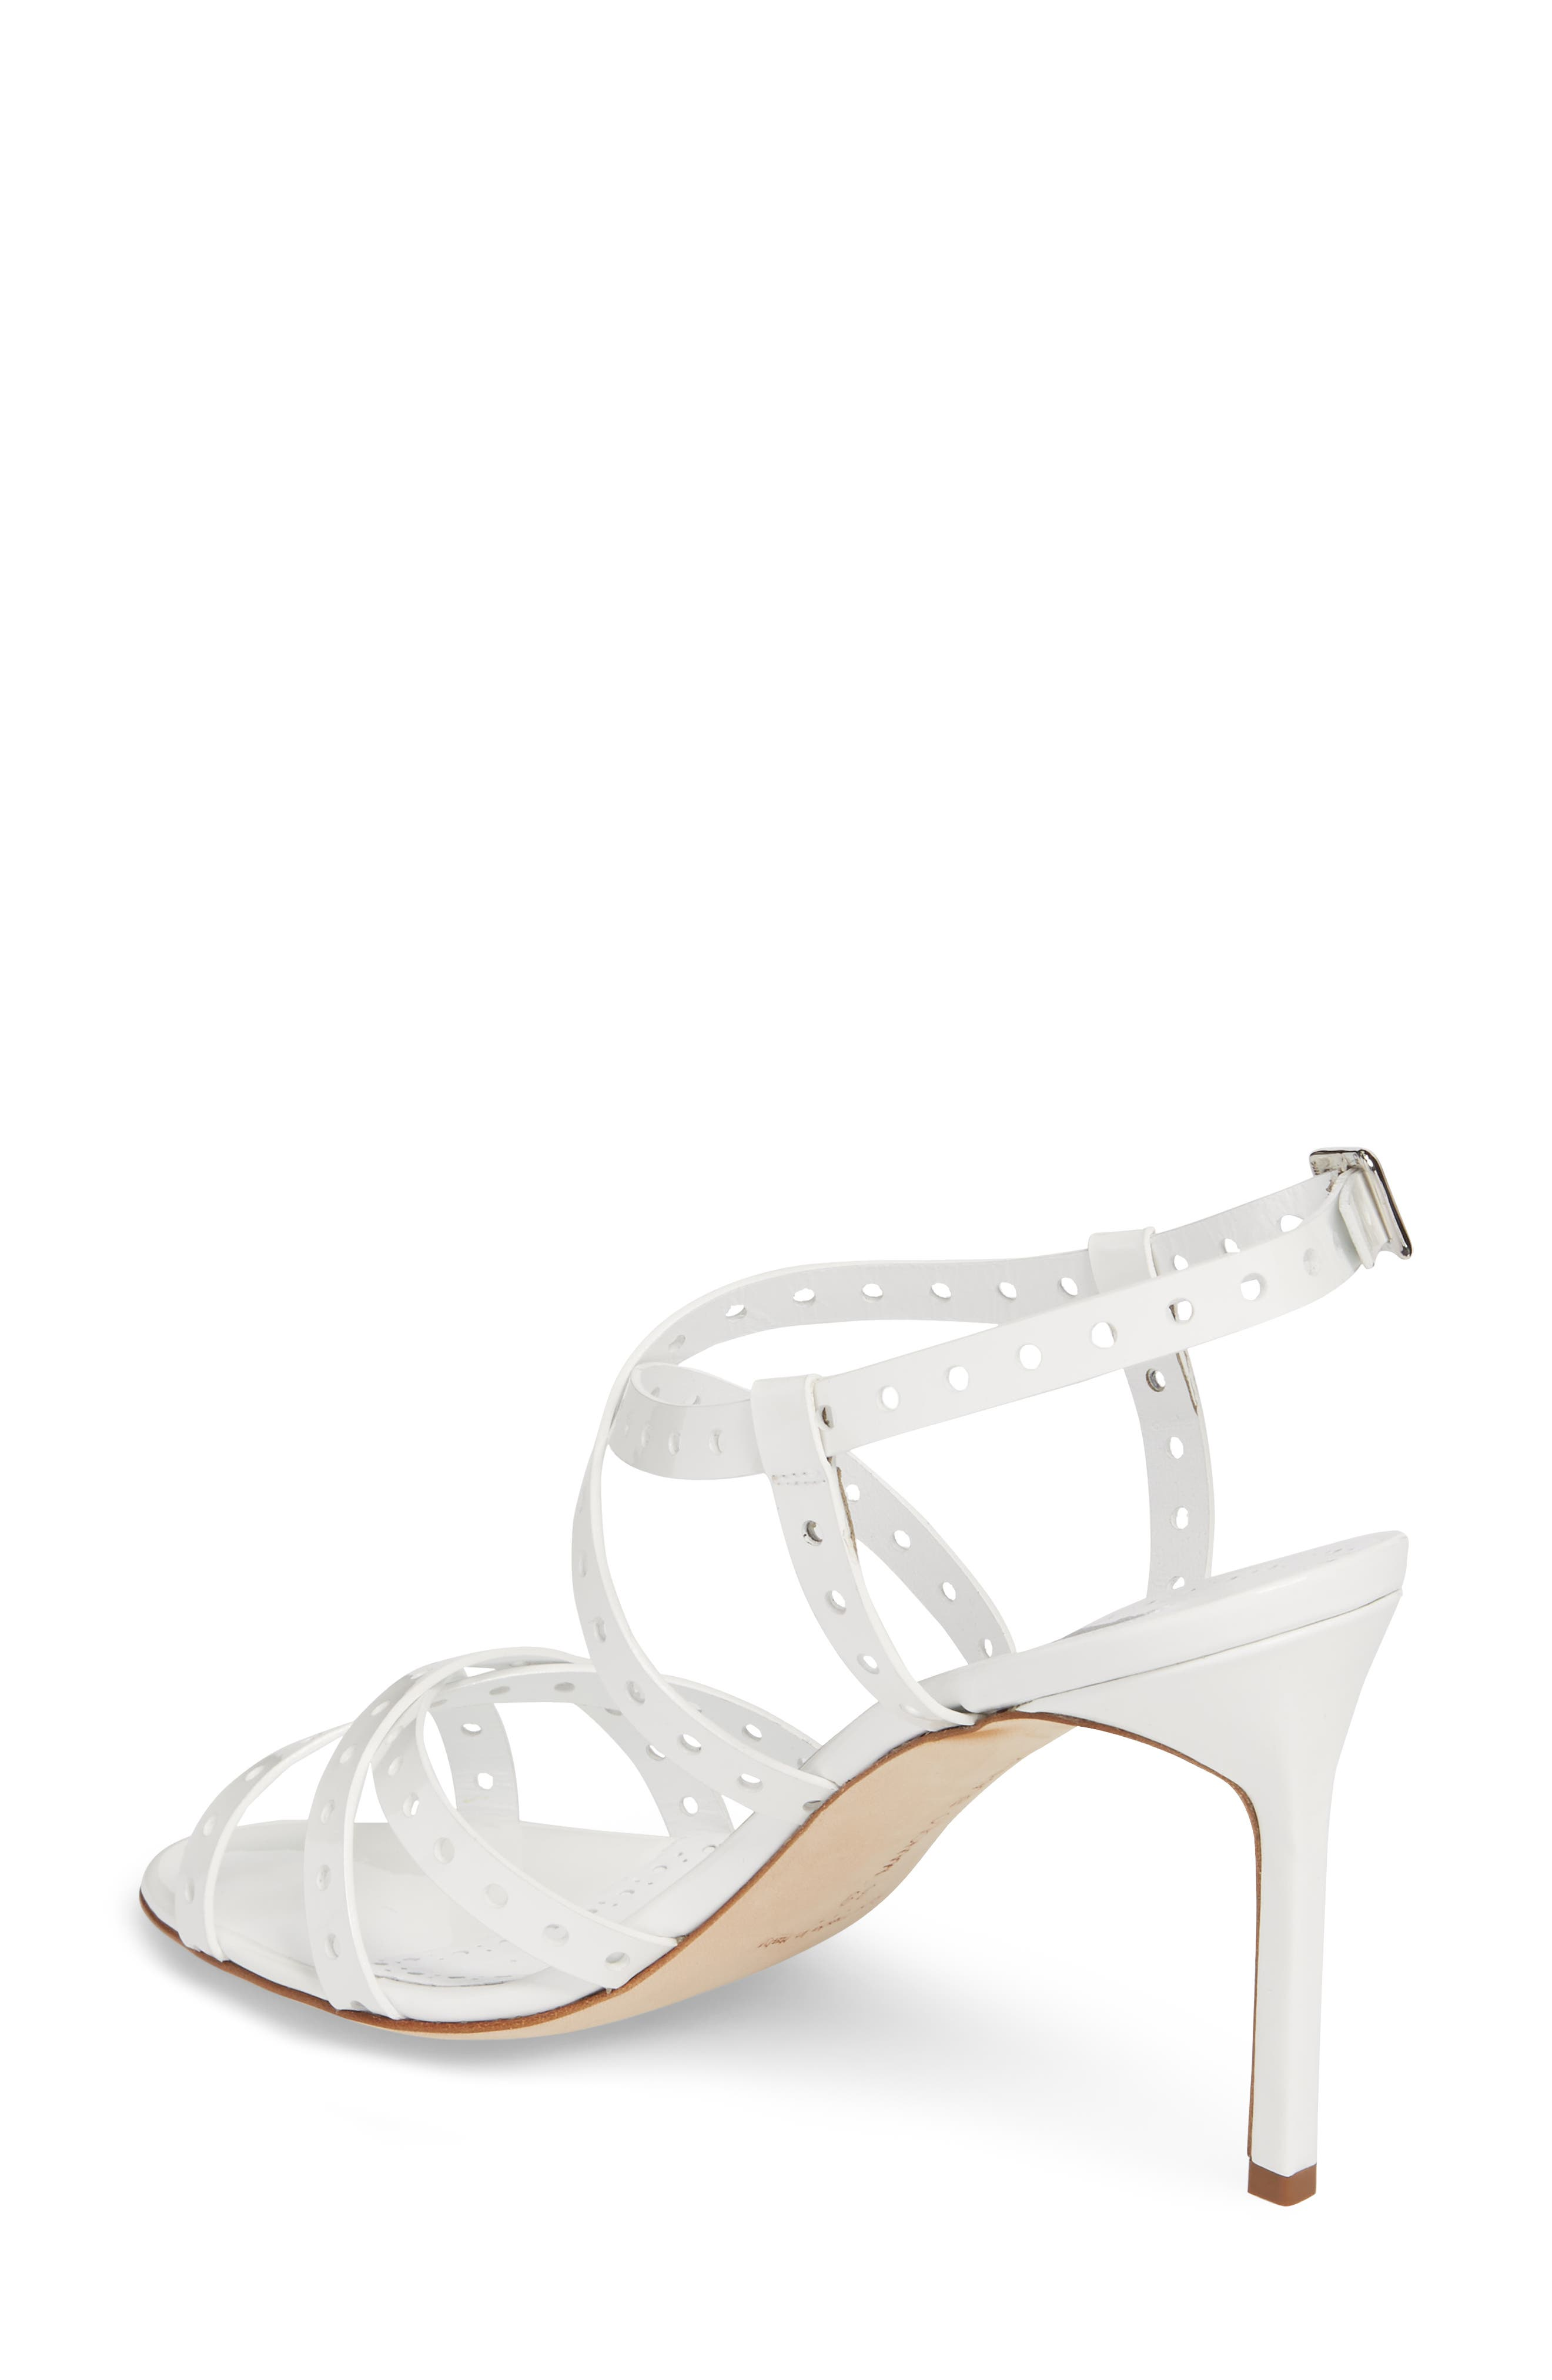 Alternate Image 2  - Manolo Blahnik Demure Perforated Strappy Sandal (Women)